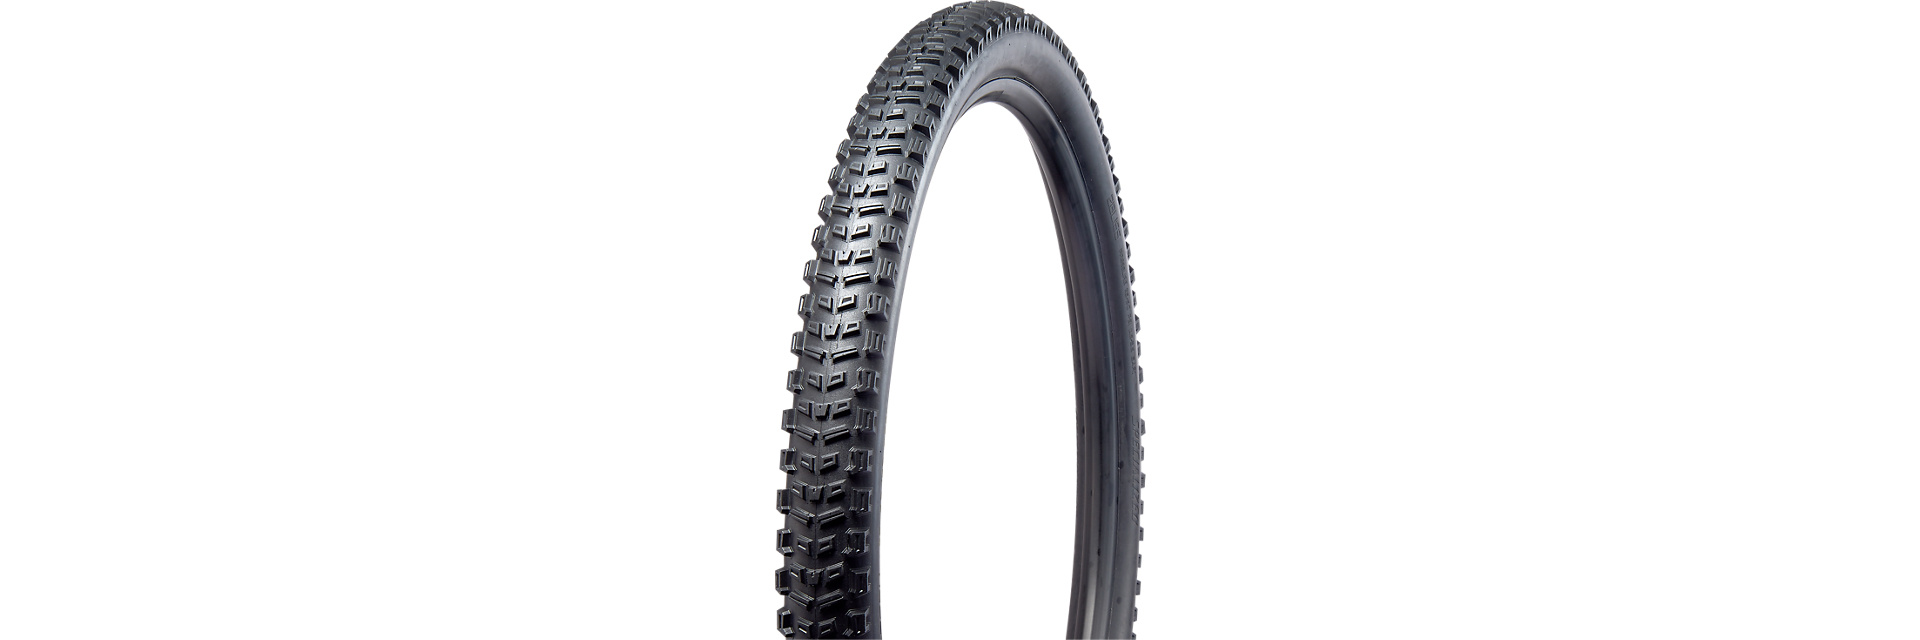 Specialized PURGATORY GRID 2BR TIRE 27.5/650BX2.6